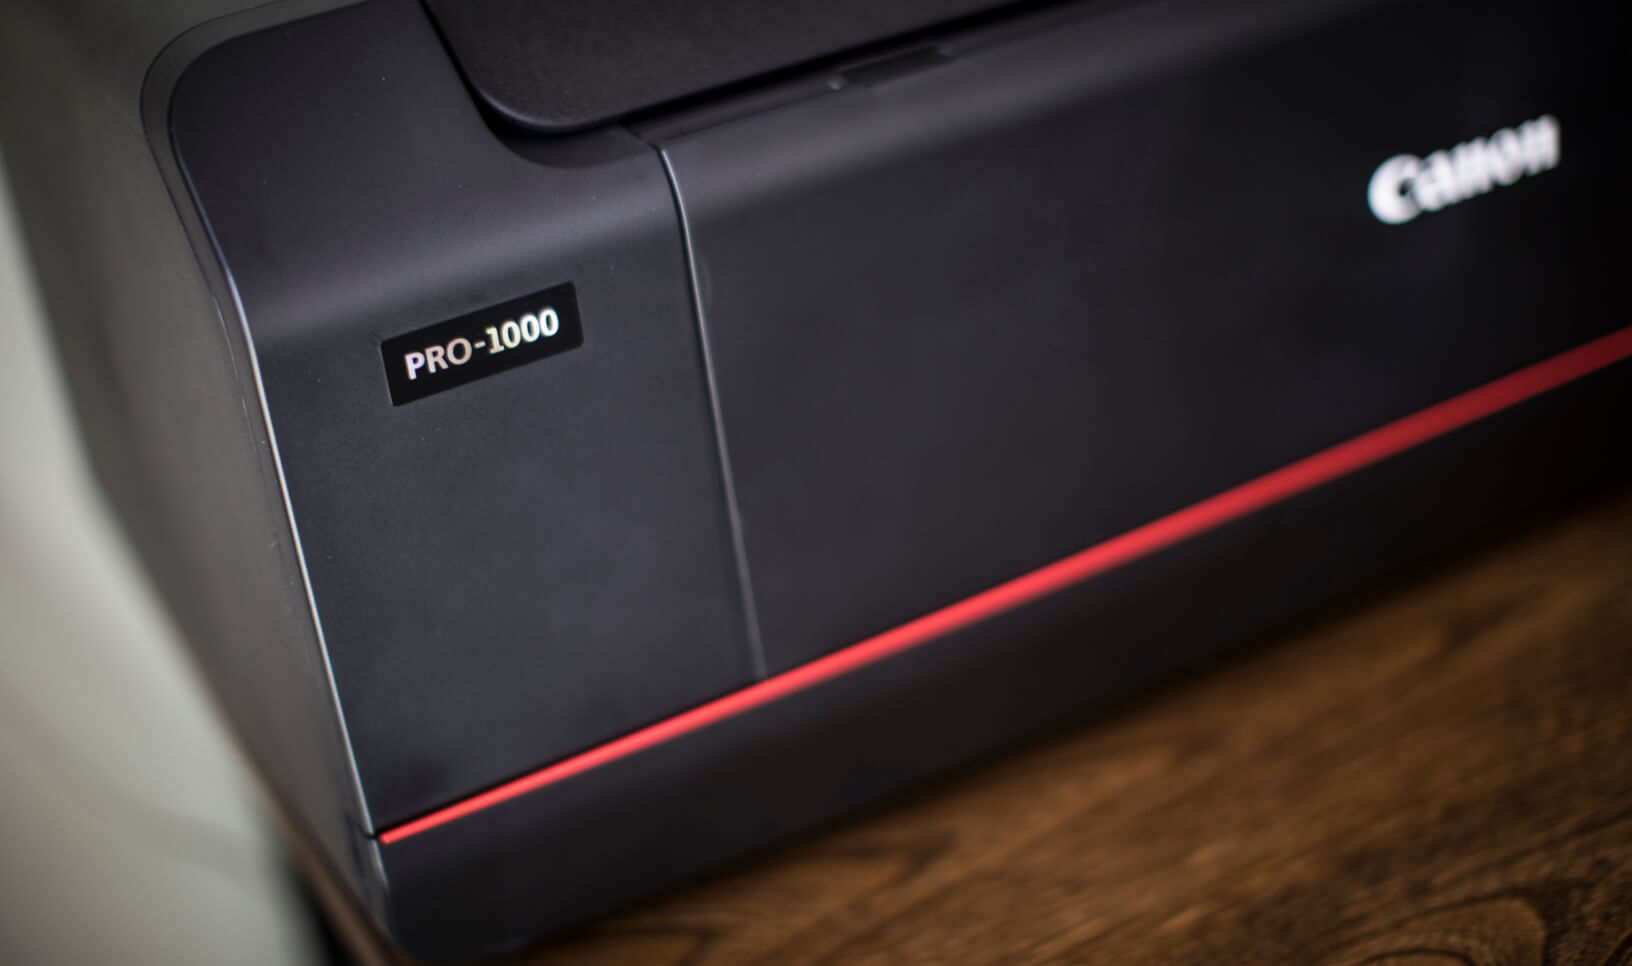 Close-up of the Canon imagePROGRAF PRO-1000 Printer